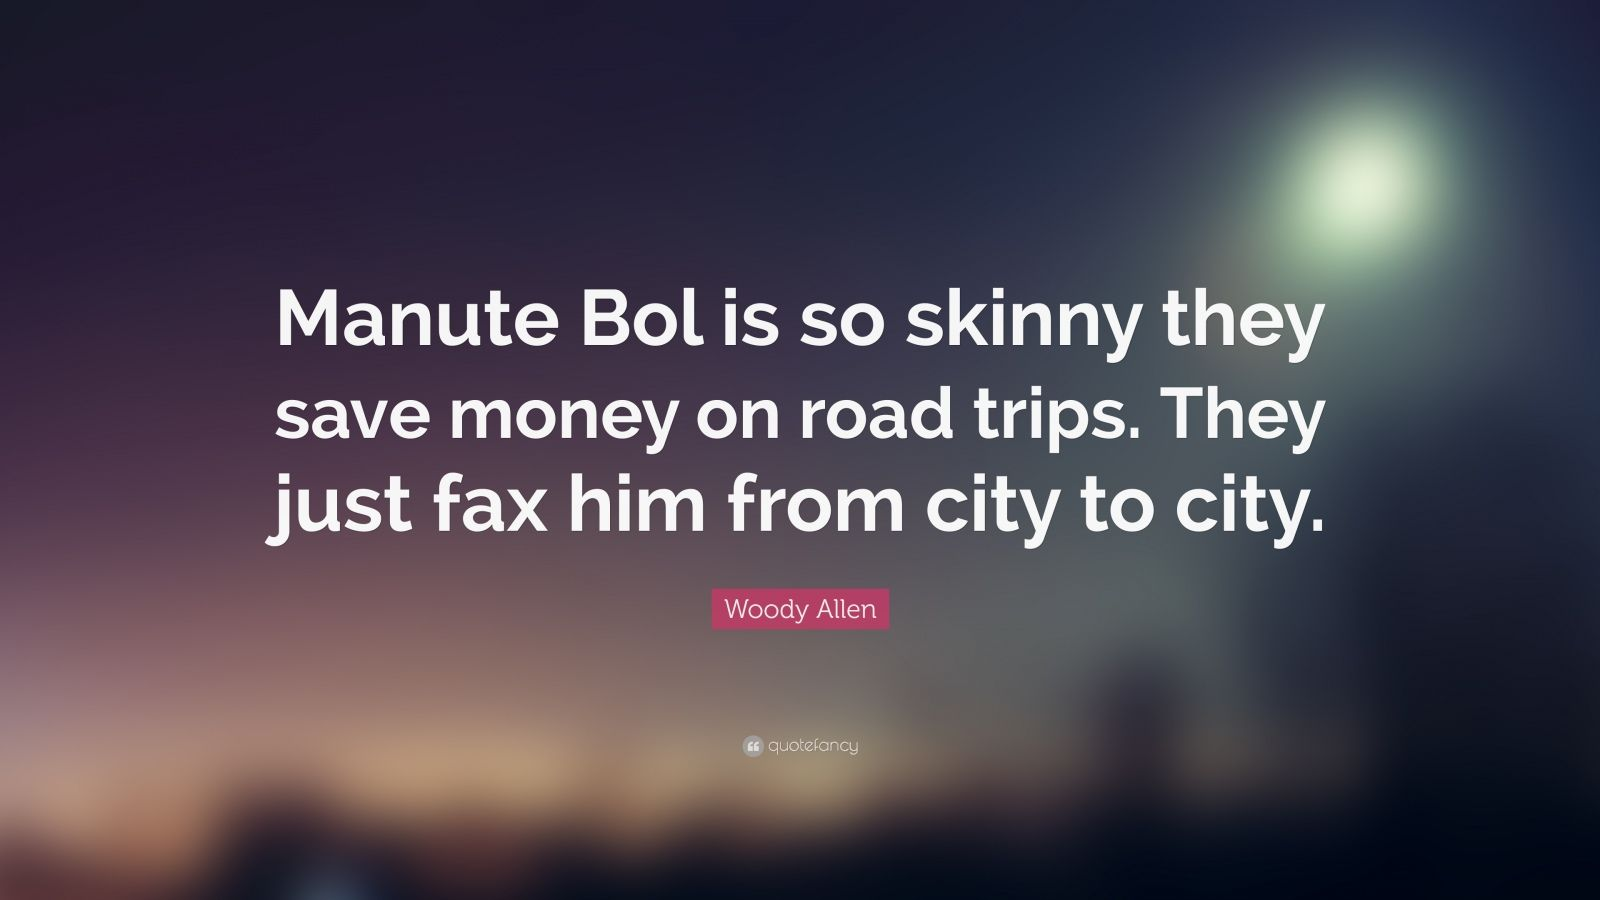 """Woody Allen Quote: """"Manute Bol is so skinny they save money on road trips. They just fax him from city to city."""""""